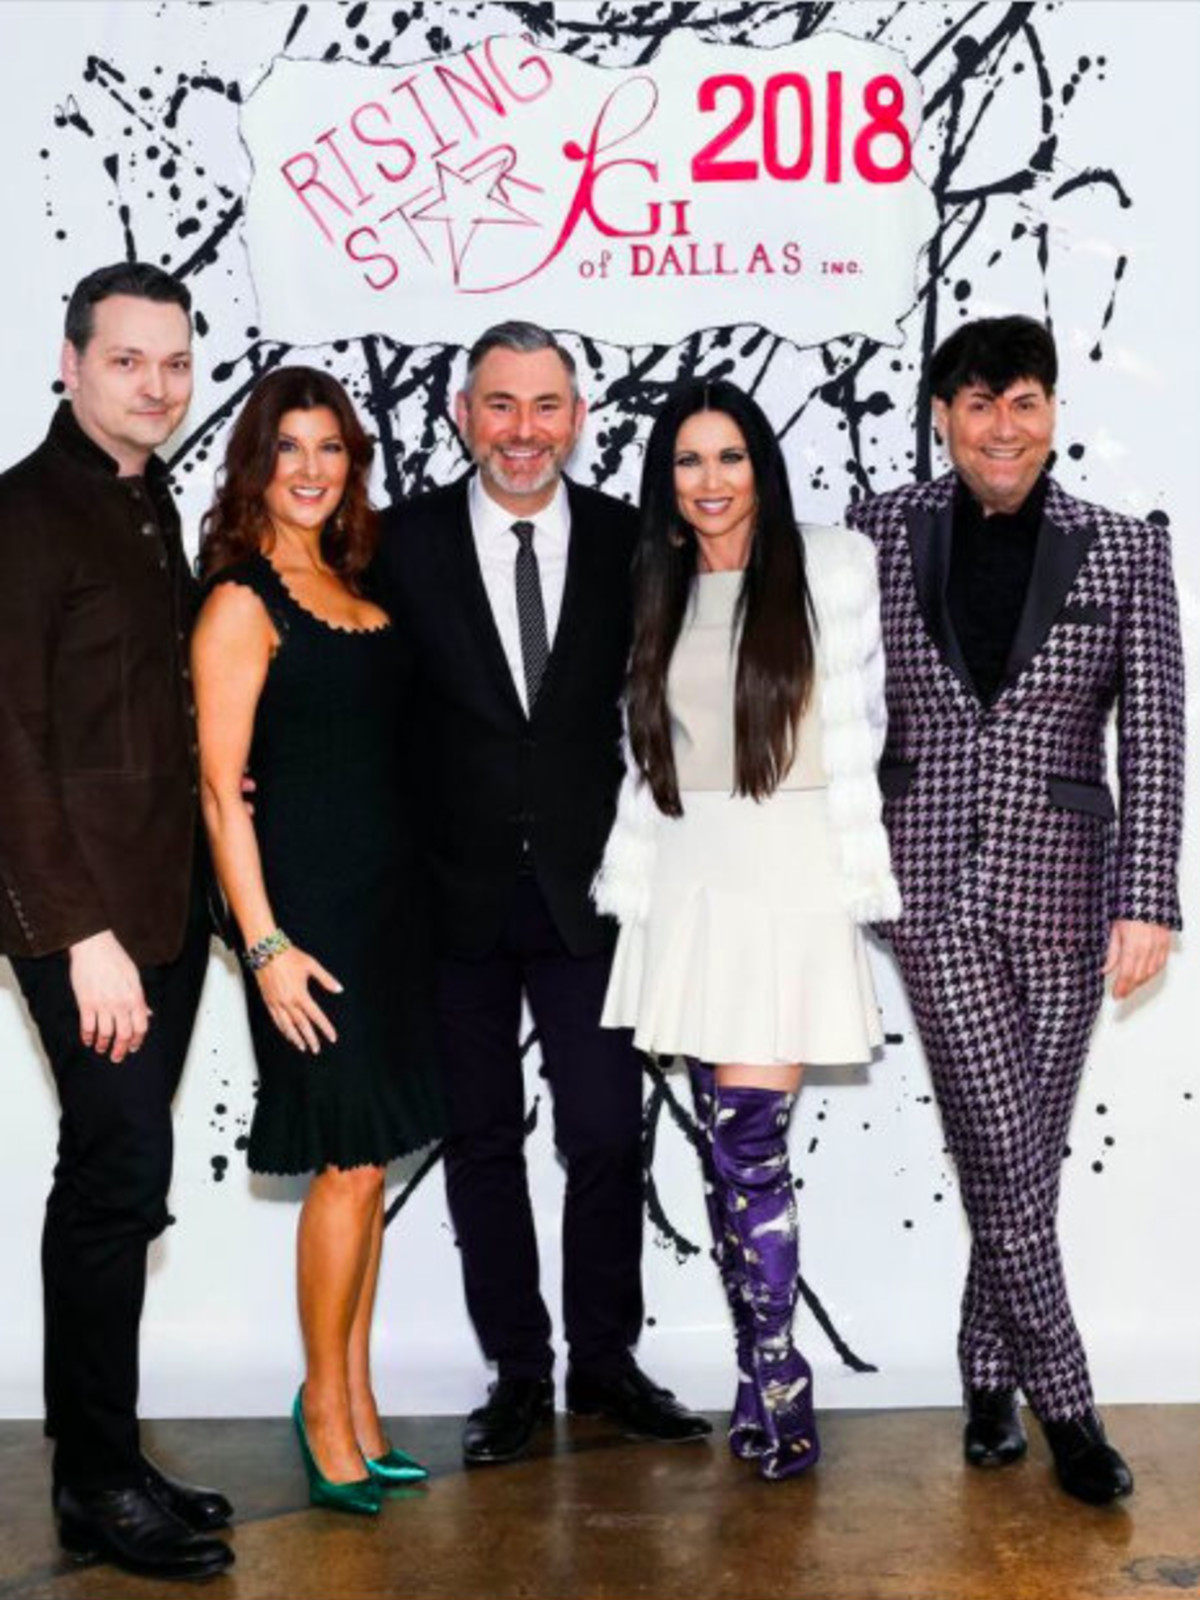 Cynthia Smoot, Chad Collum, Cynthia Smoot, Ken Weber, LeeAnne Locken, Steve Kemble, Dallas_FGI Rising Star